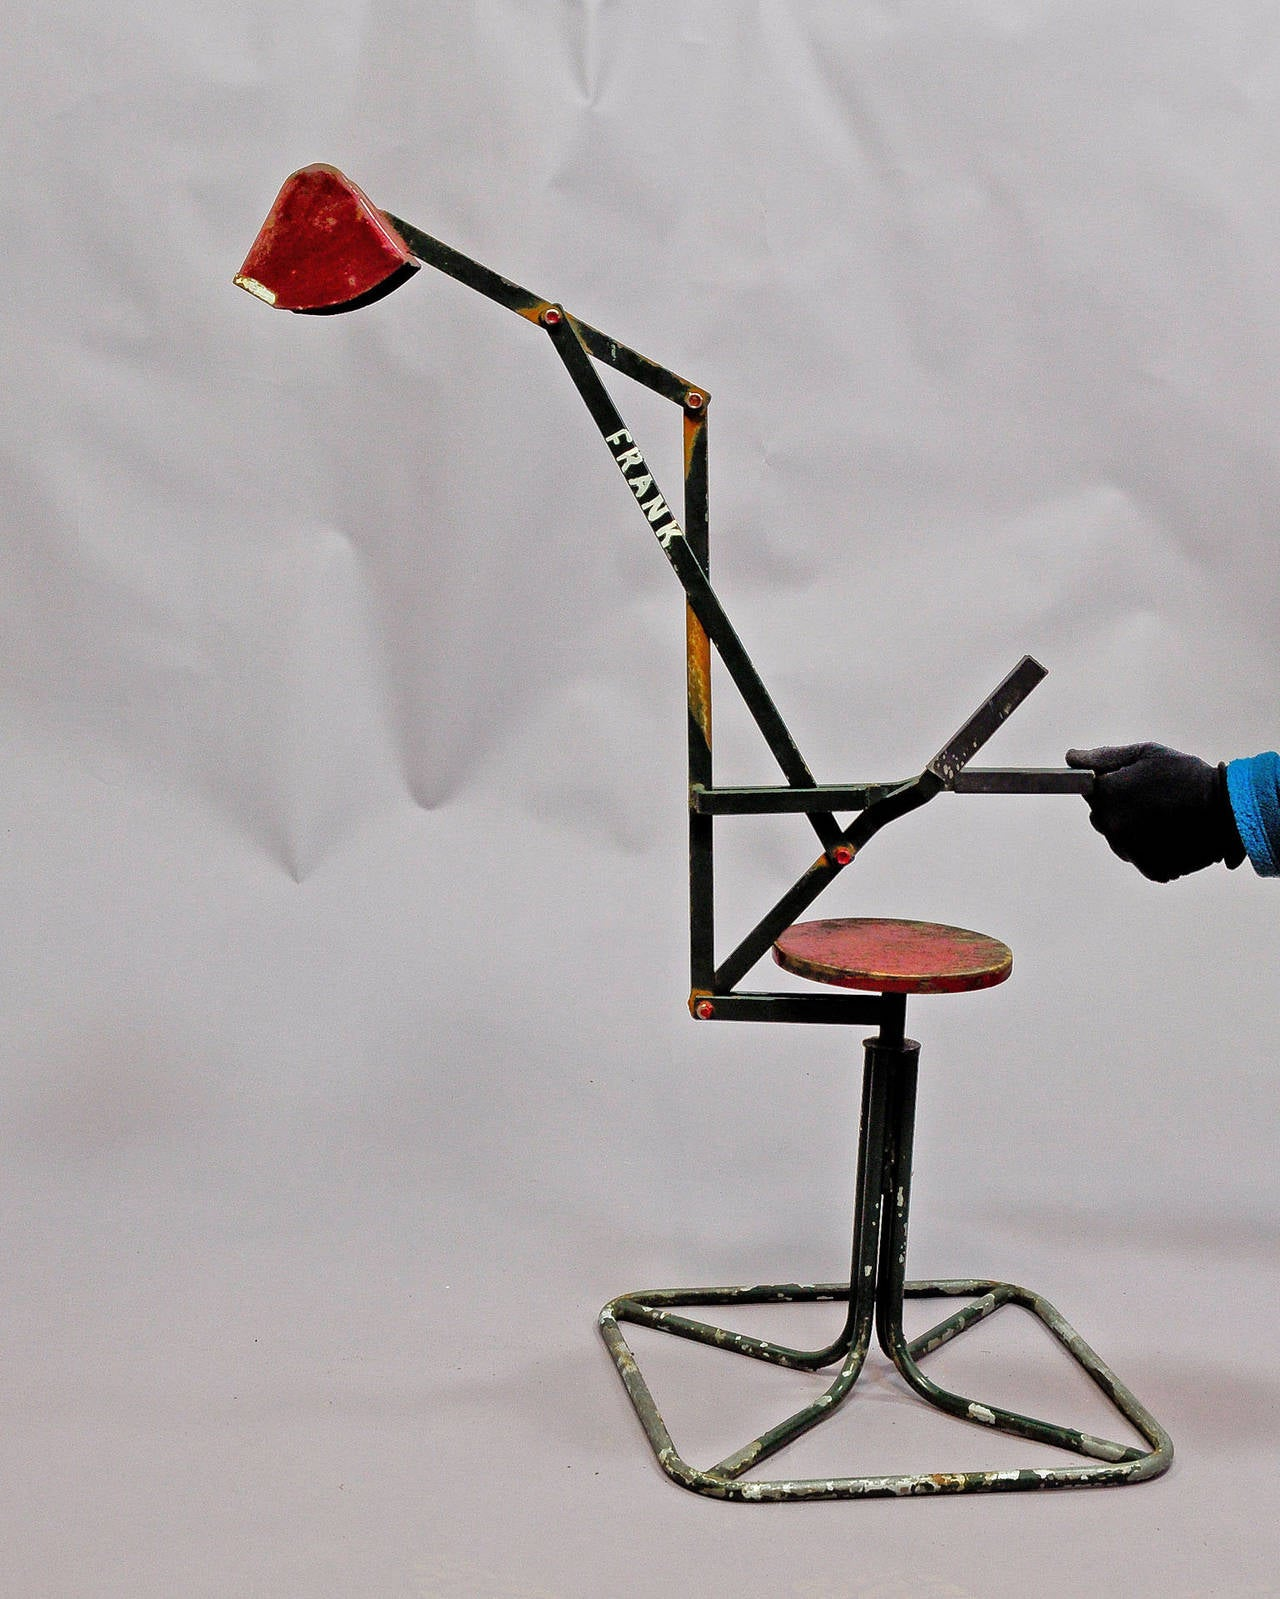 Arts and crafts metal toy seat bucket digger for sale at for Metal arts and crafts